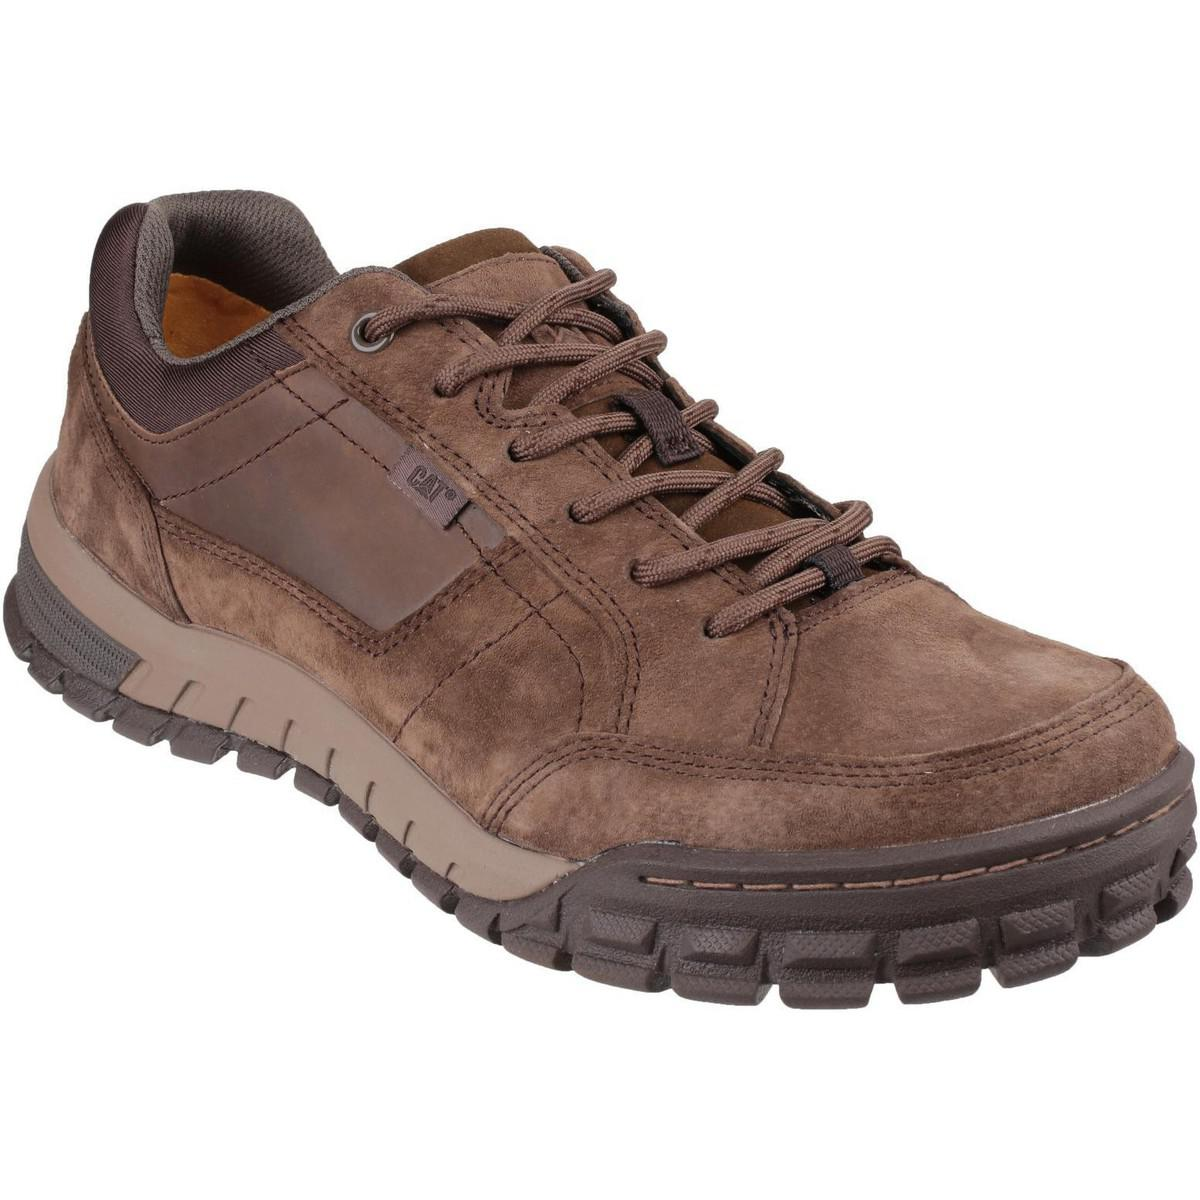 4a1ea86ddd9 Caterpillar Sentinel Men s Shoes (trainers) In Other in Brown for ...